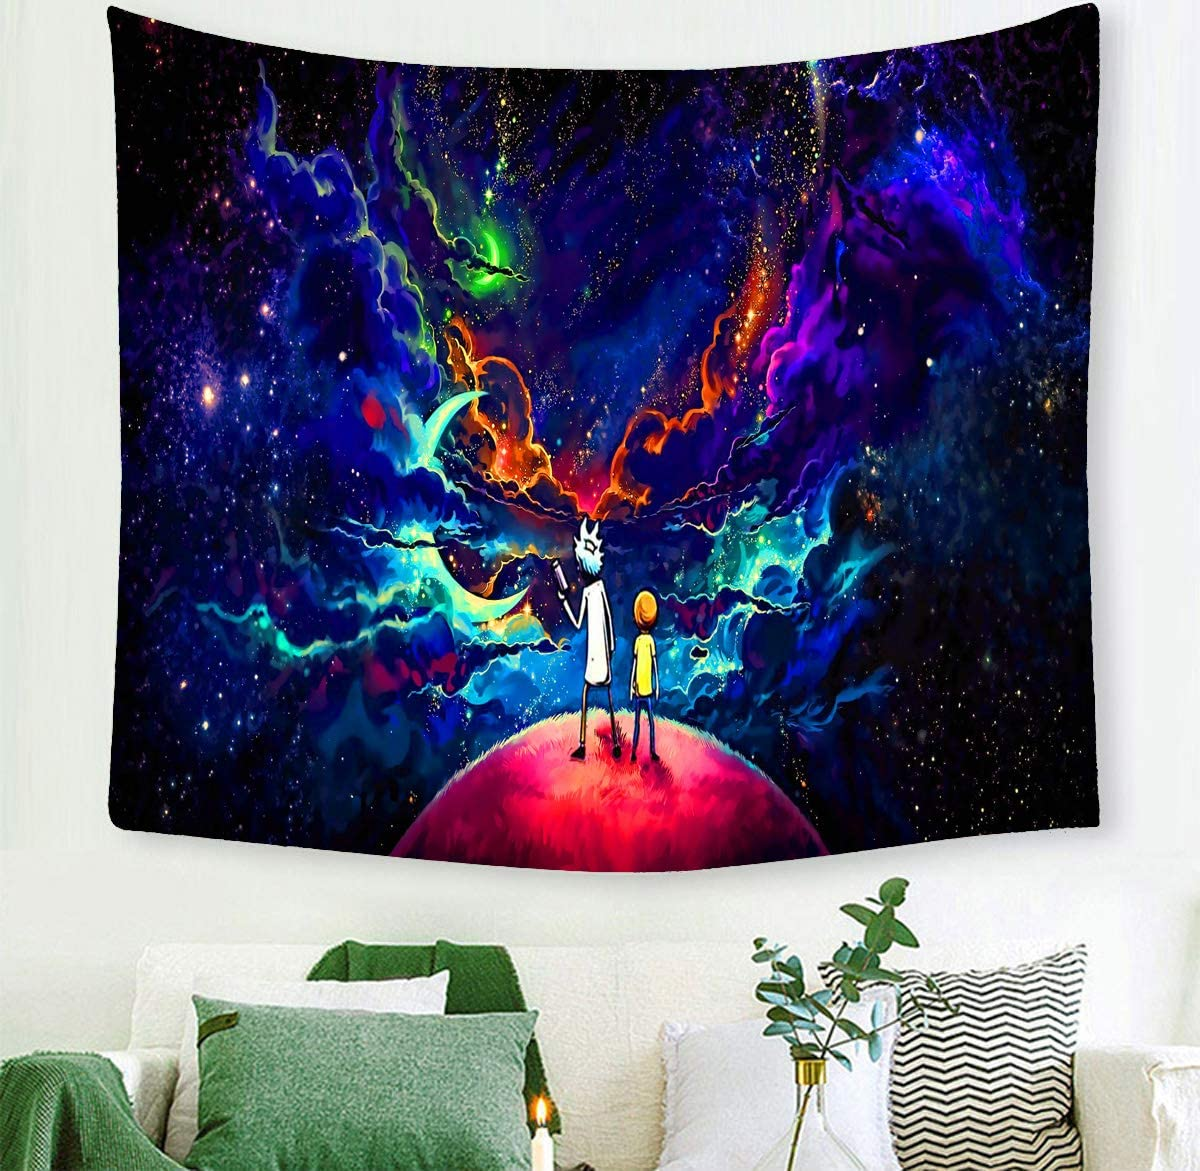 Amazon Com Macofcust Psychedelic Rick Morty Tapestry Moon Star